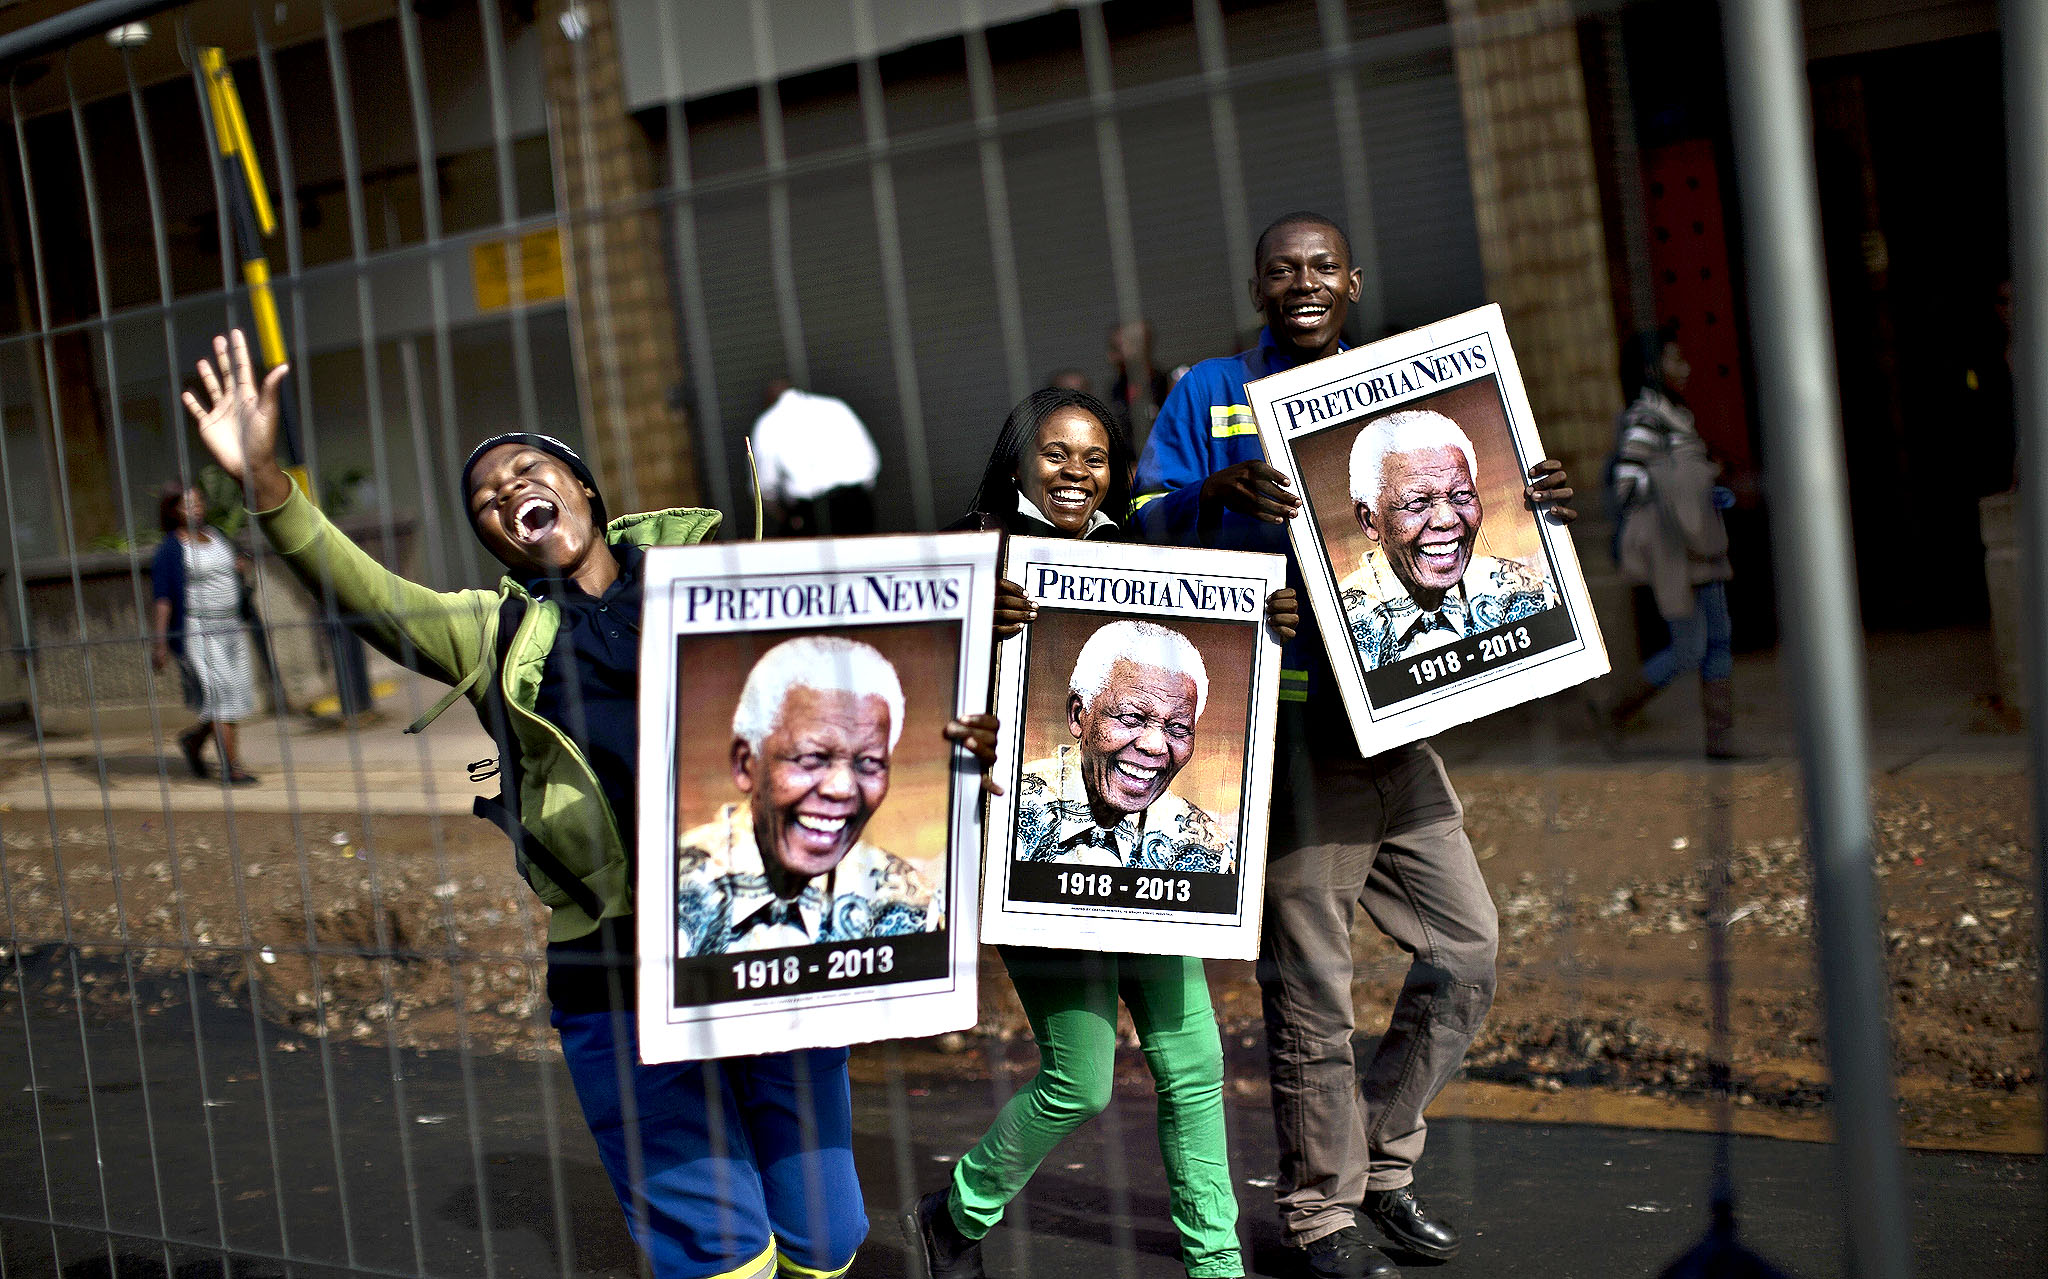 South African mourners hold posters of former president Nelson Mandela, while chanting slogans as the convoy transporting the body of Nelson Mandela passes by, in Pretoria, South Africa, Wednesday, Dec. 11, 2013. Motorcycle-riding police officers escorted the casket Wednesday morning from 1 Military Hospital outside of Pretoria to the Union Buildings. Some Pretoria residents lined the streets to watch the procession go by, singing tributes to Mandela, who died Dec. 5 at age 95.